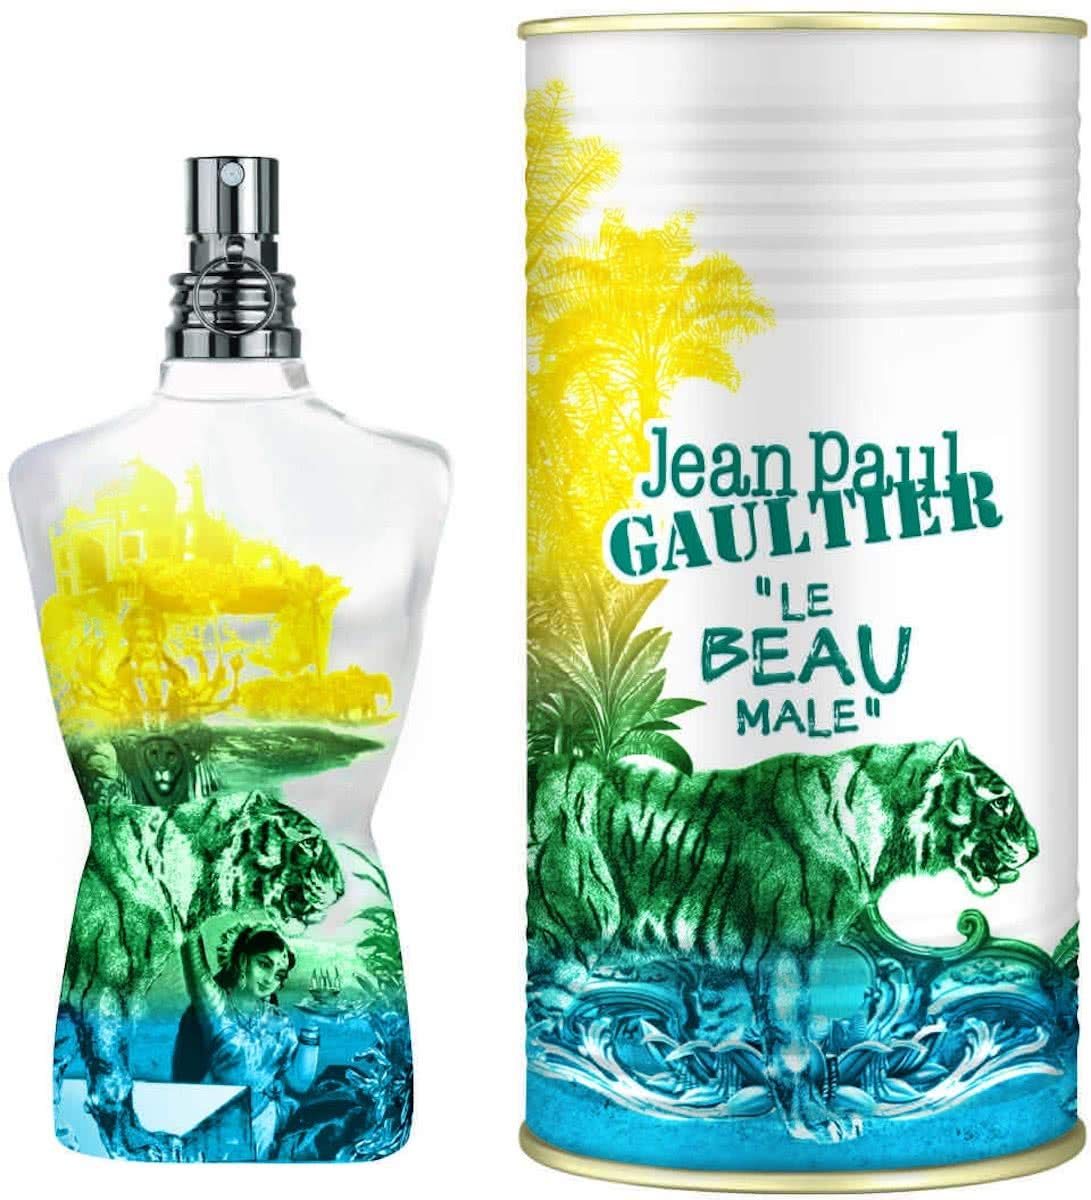 Jean Paul Gaultier Le Beau Male Eau De Toilette Spray 125ml/4.2oz